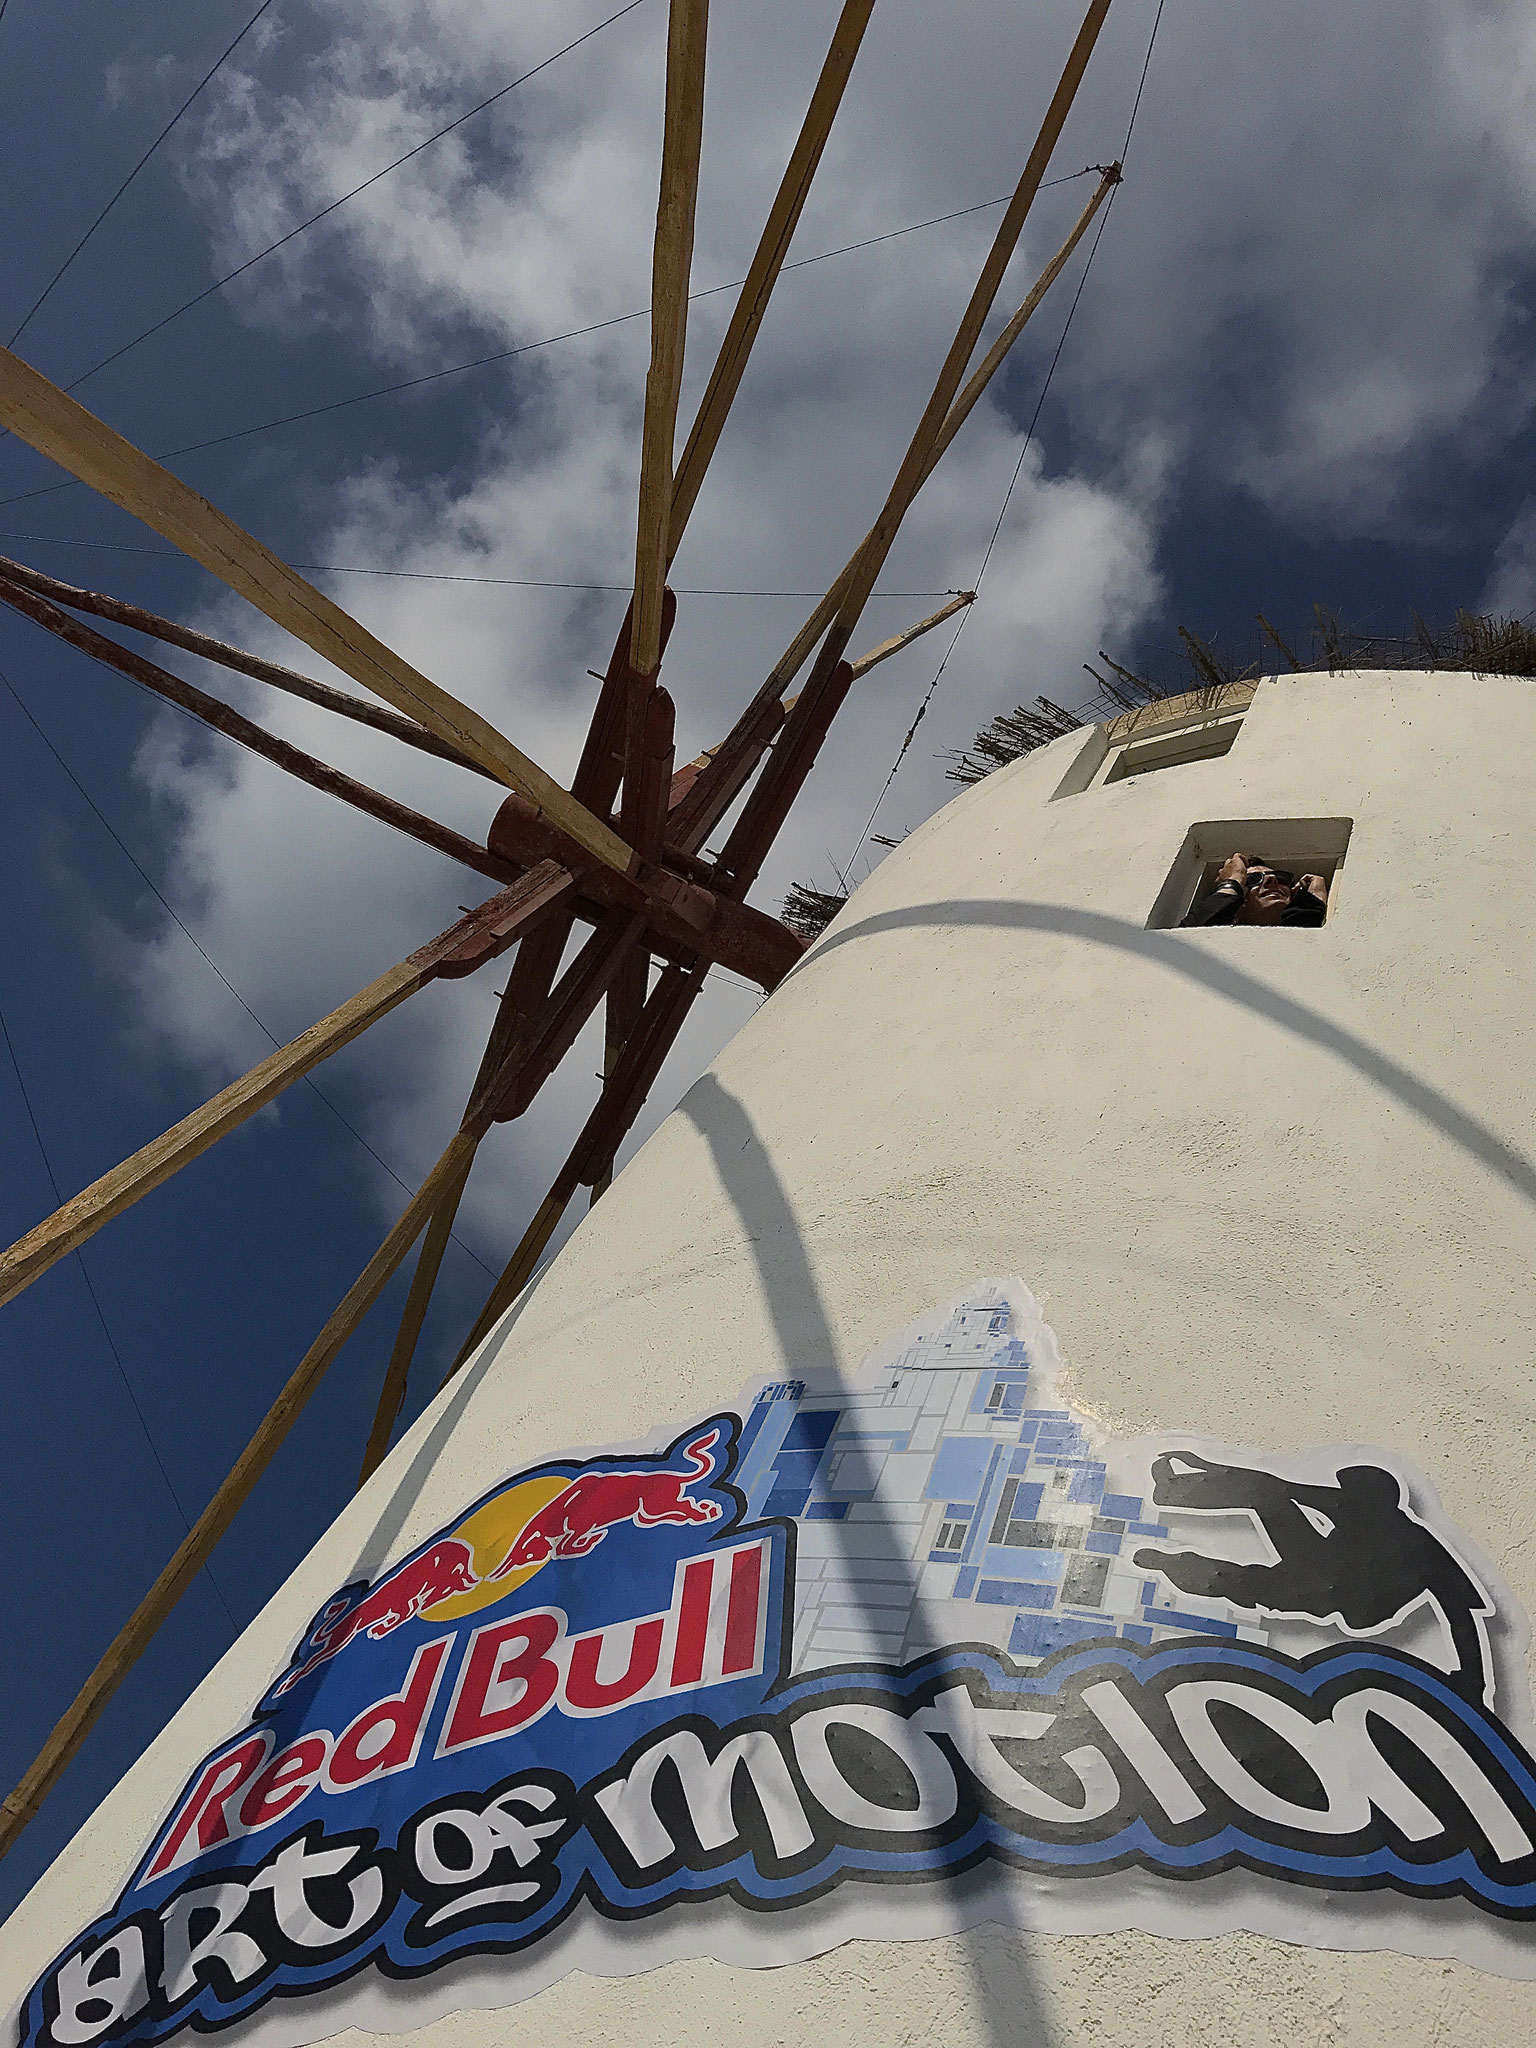 Red Bull Art of Motion 2014 and 2015.